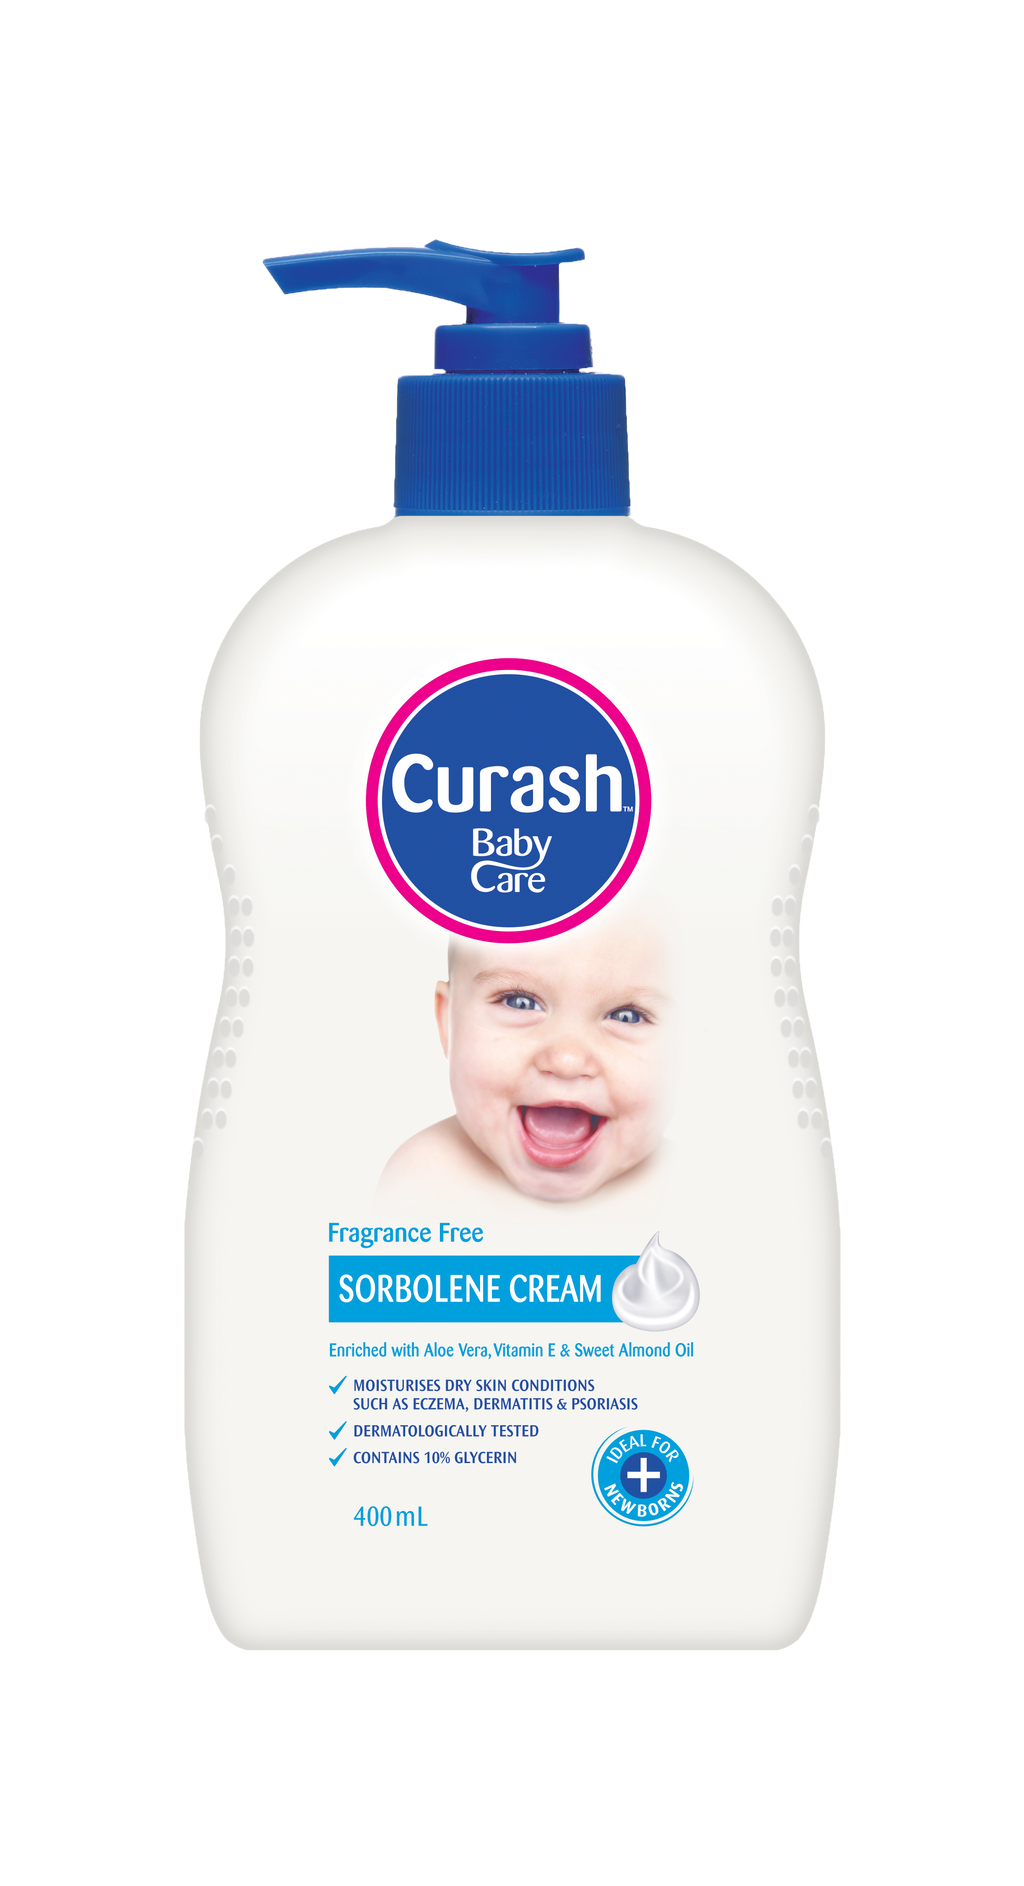 Curash Fragrance Free Sorbolene Cream 400ml